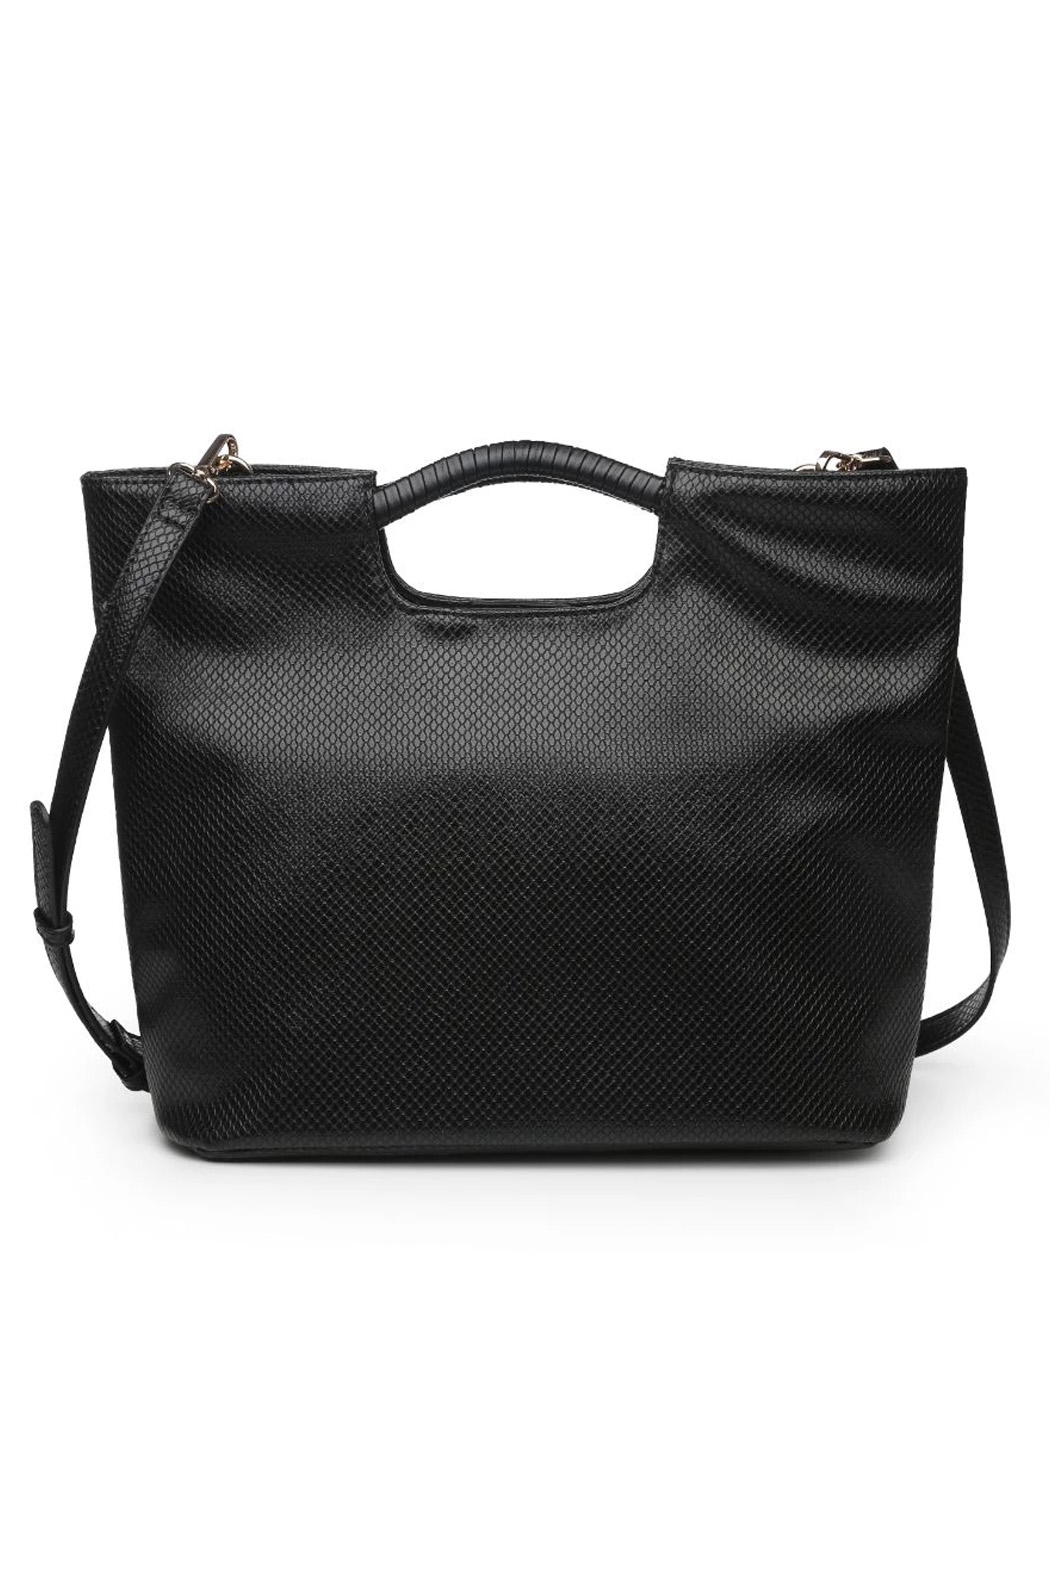 Urban Expressions Silas Vegan Leather Handbag - Front Cropped Image